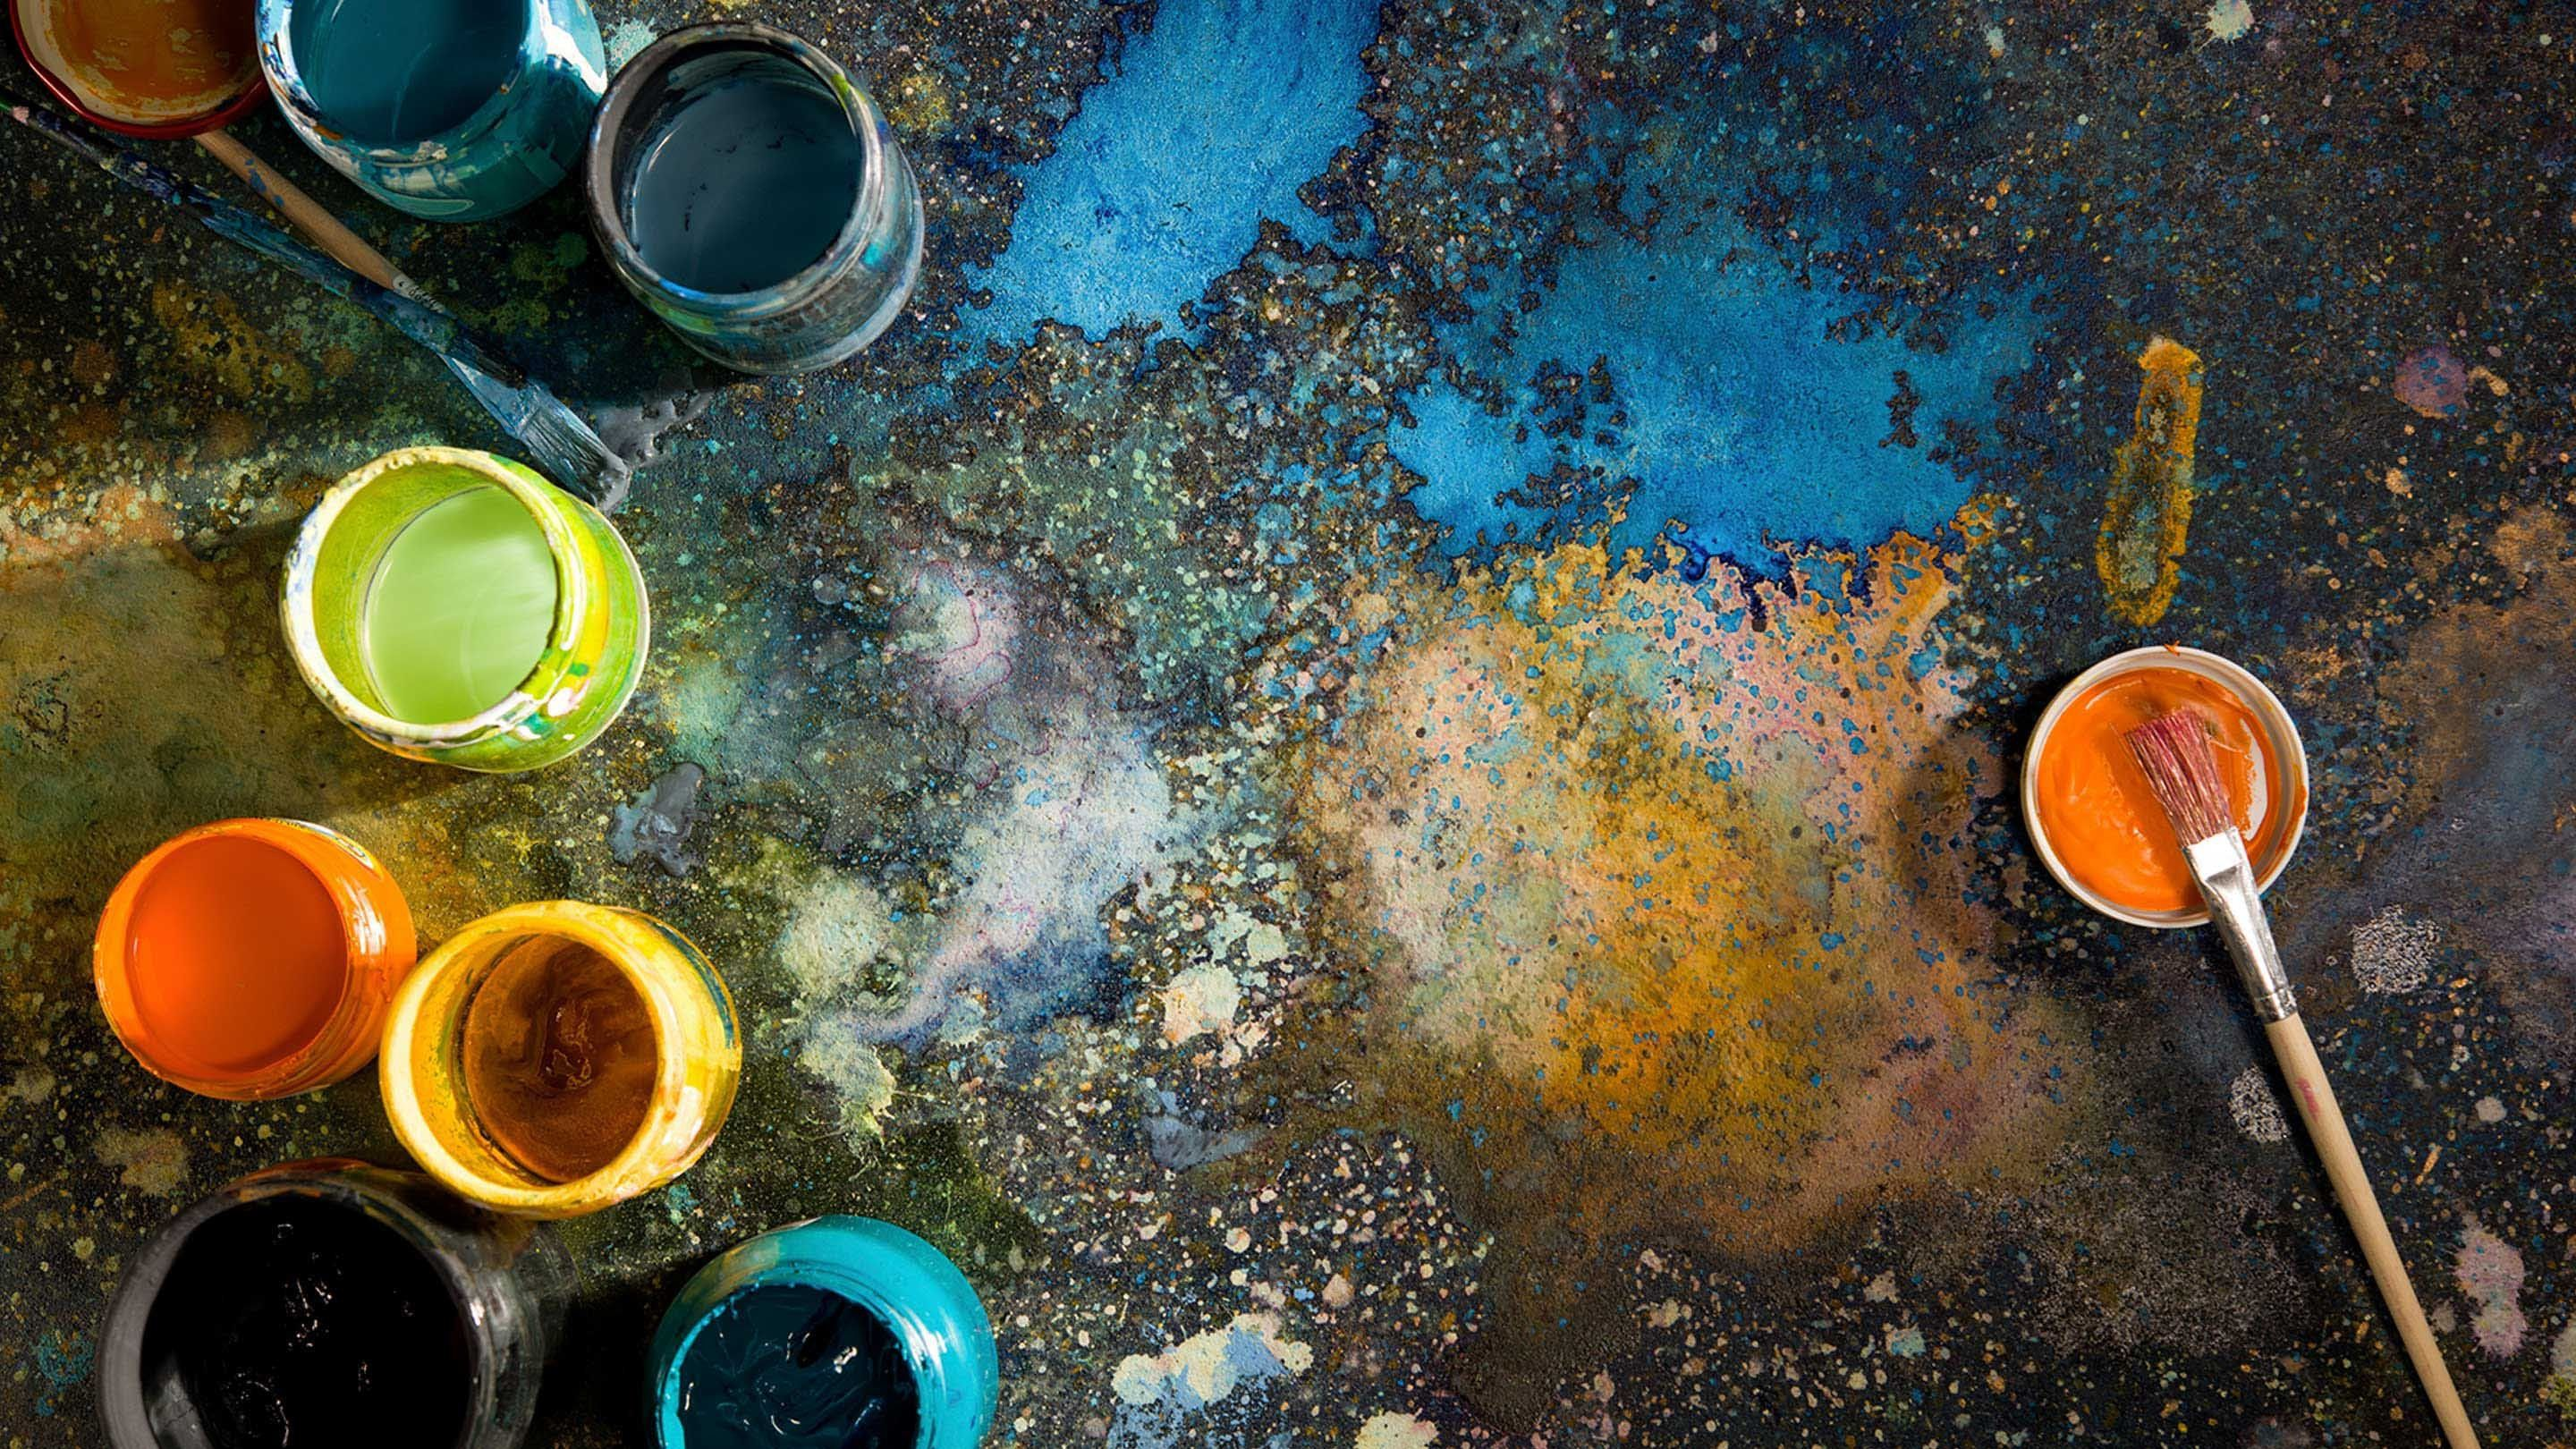 Paint brushes and jars of paint are on a black floor splattered with colorful paint.